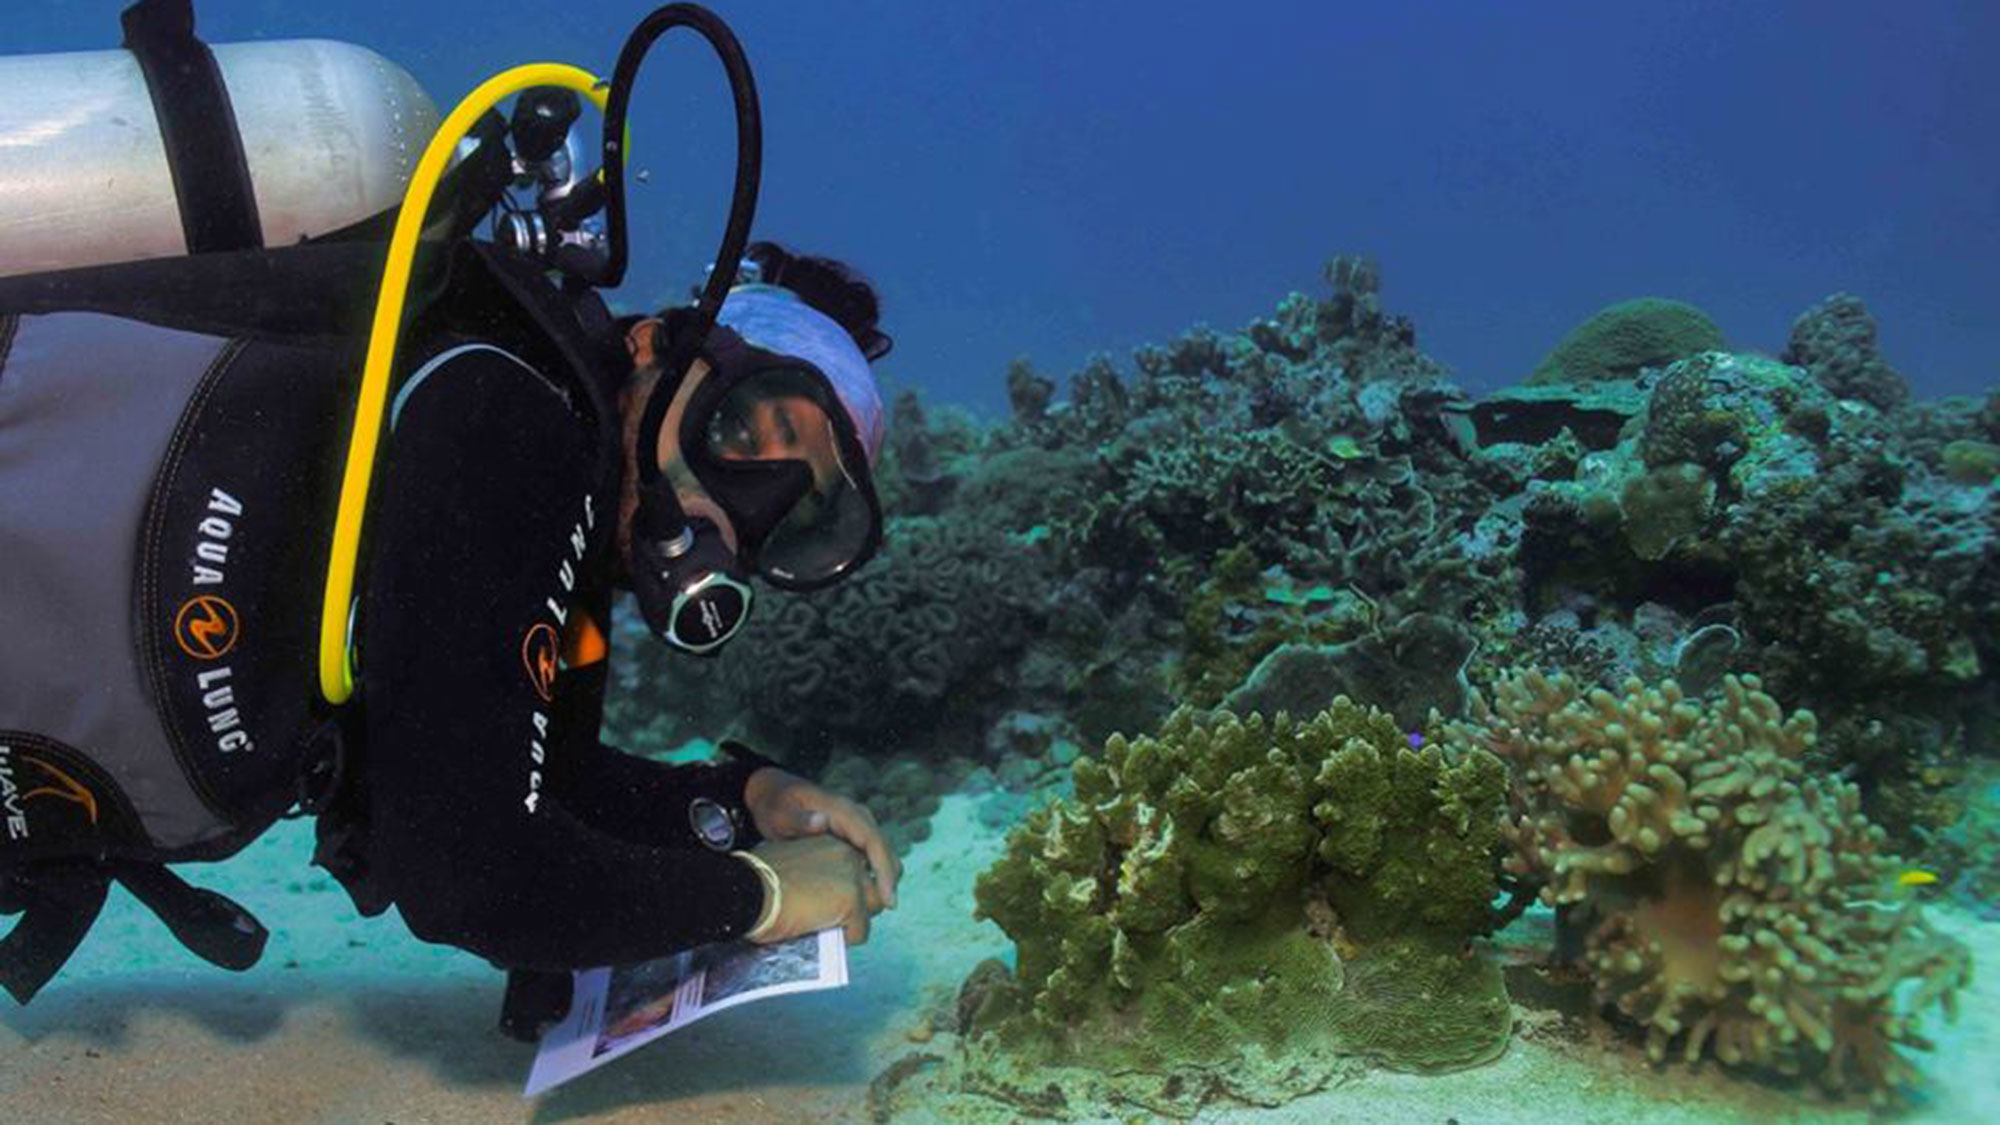 Ahmed has been investigating coral bleaching in the Maldives